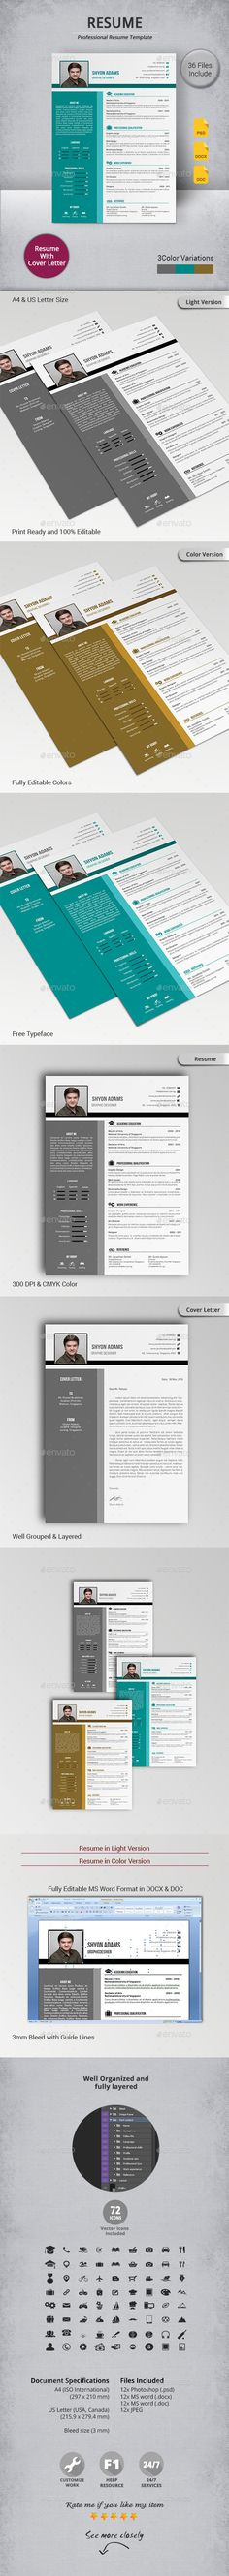 Resume Stationery, Print templates and Graphics - net resume